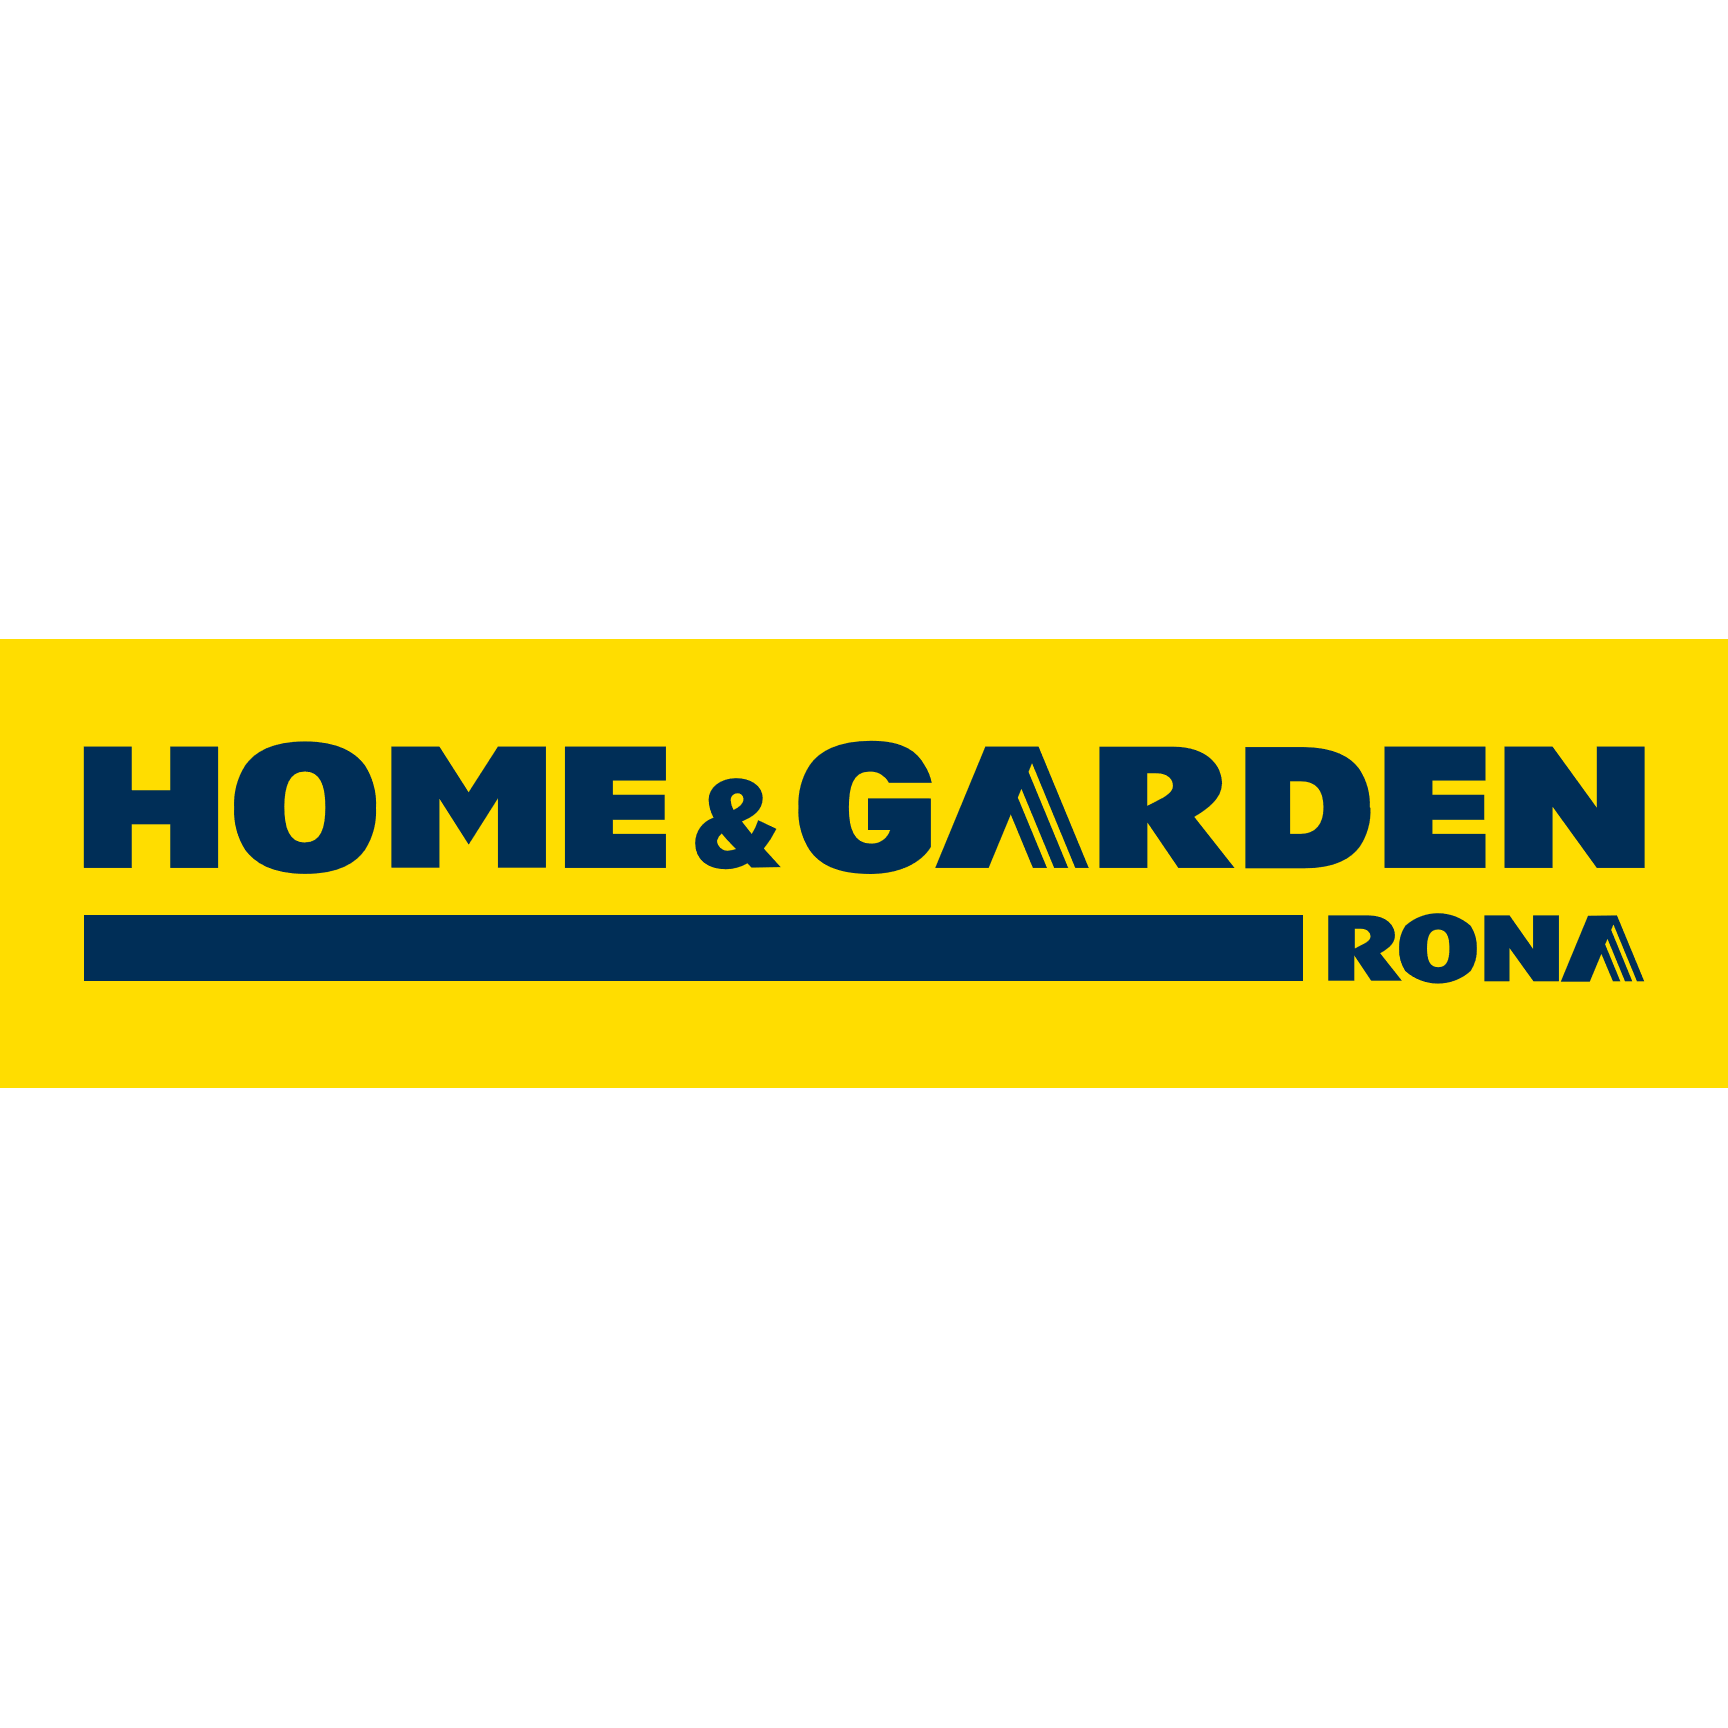 Home & Garden RONA - Closed